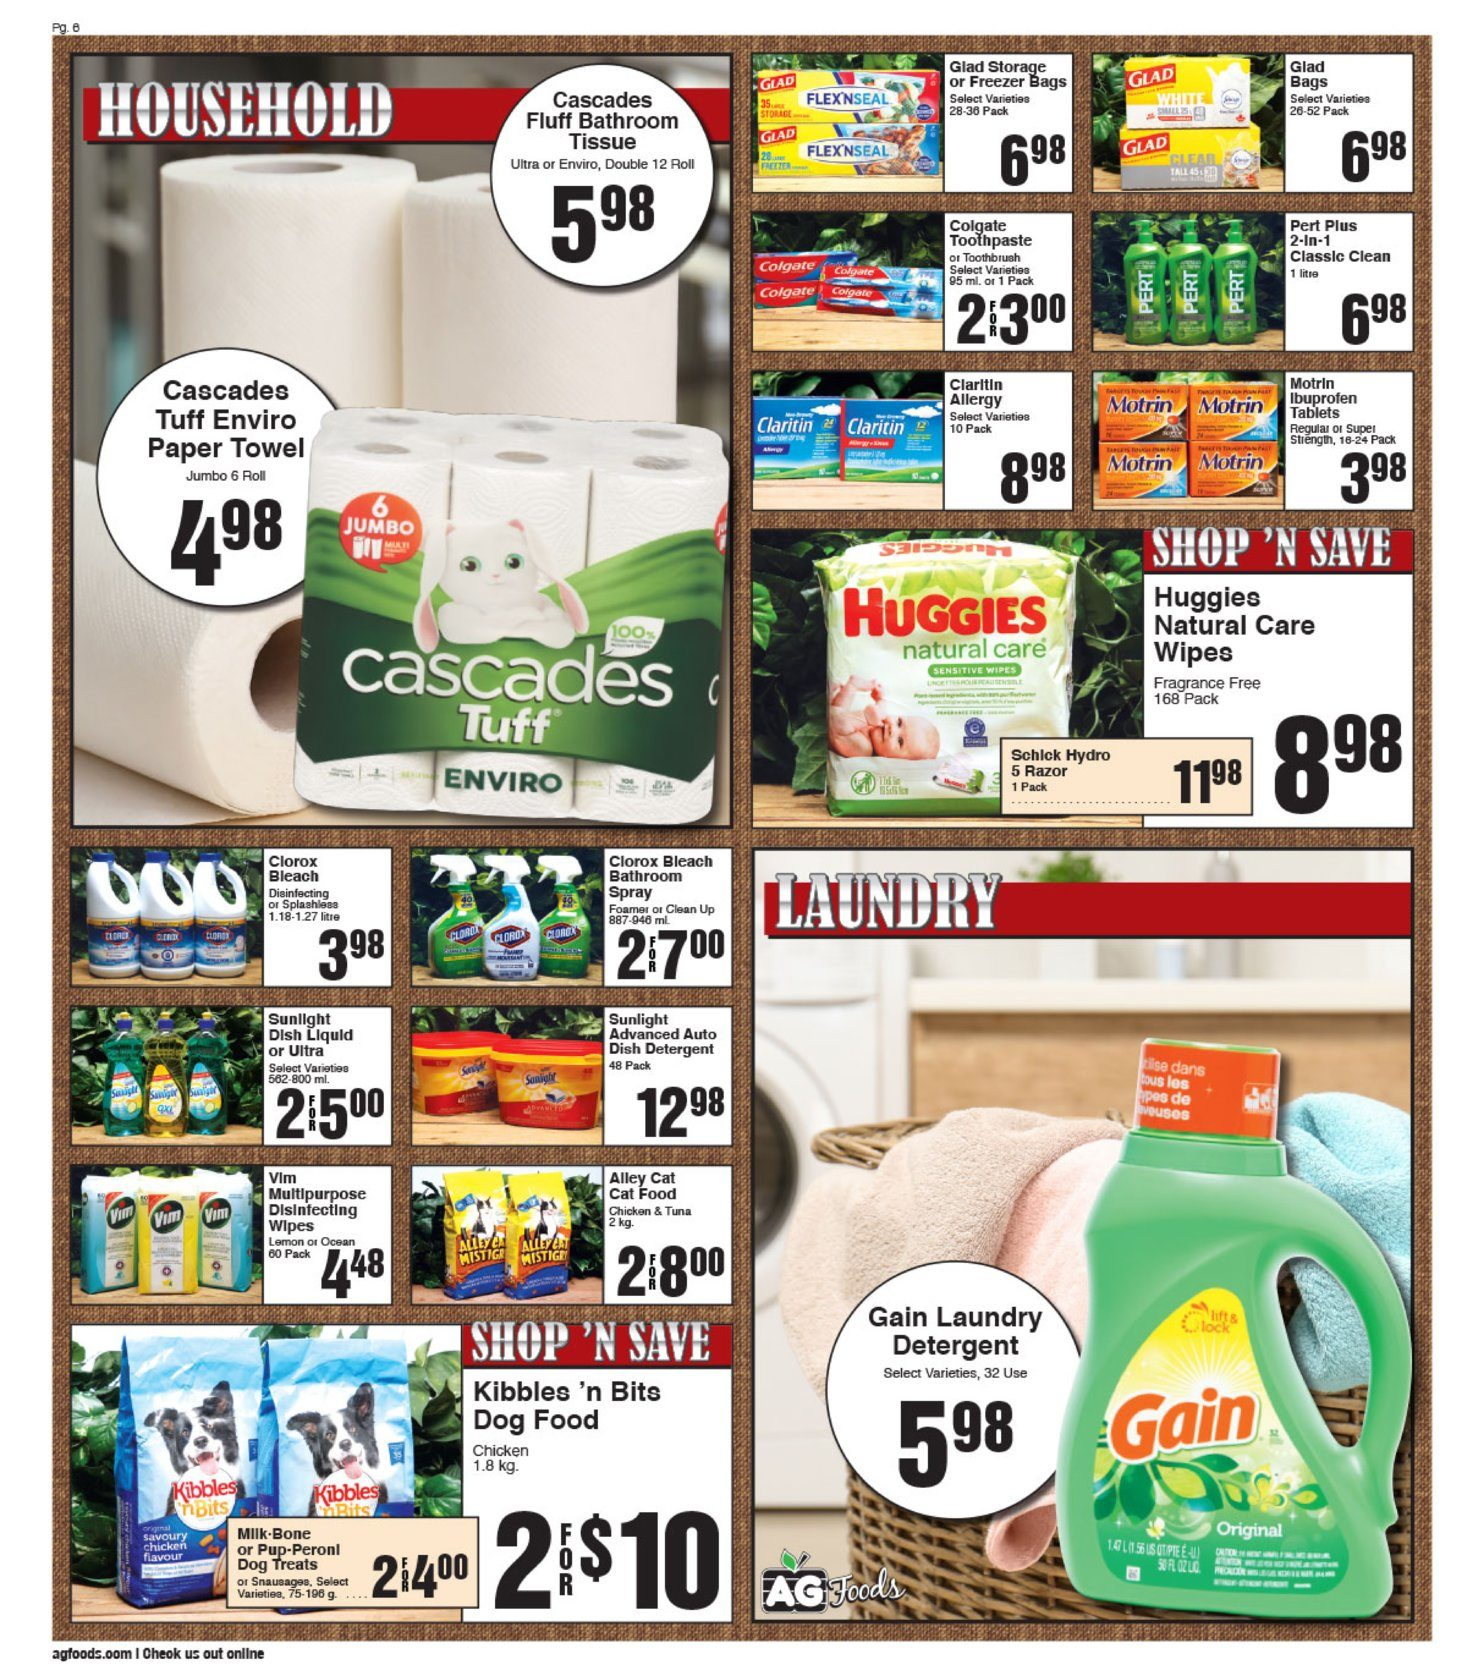 AG Foods - Weekly Flyer Specials - Page 6